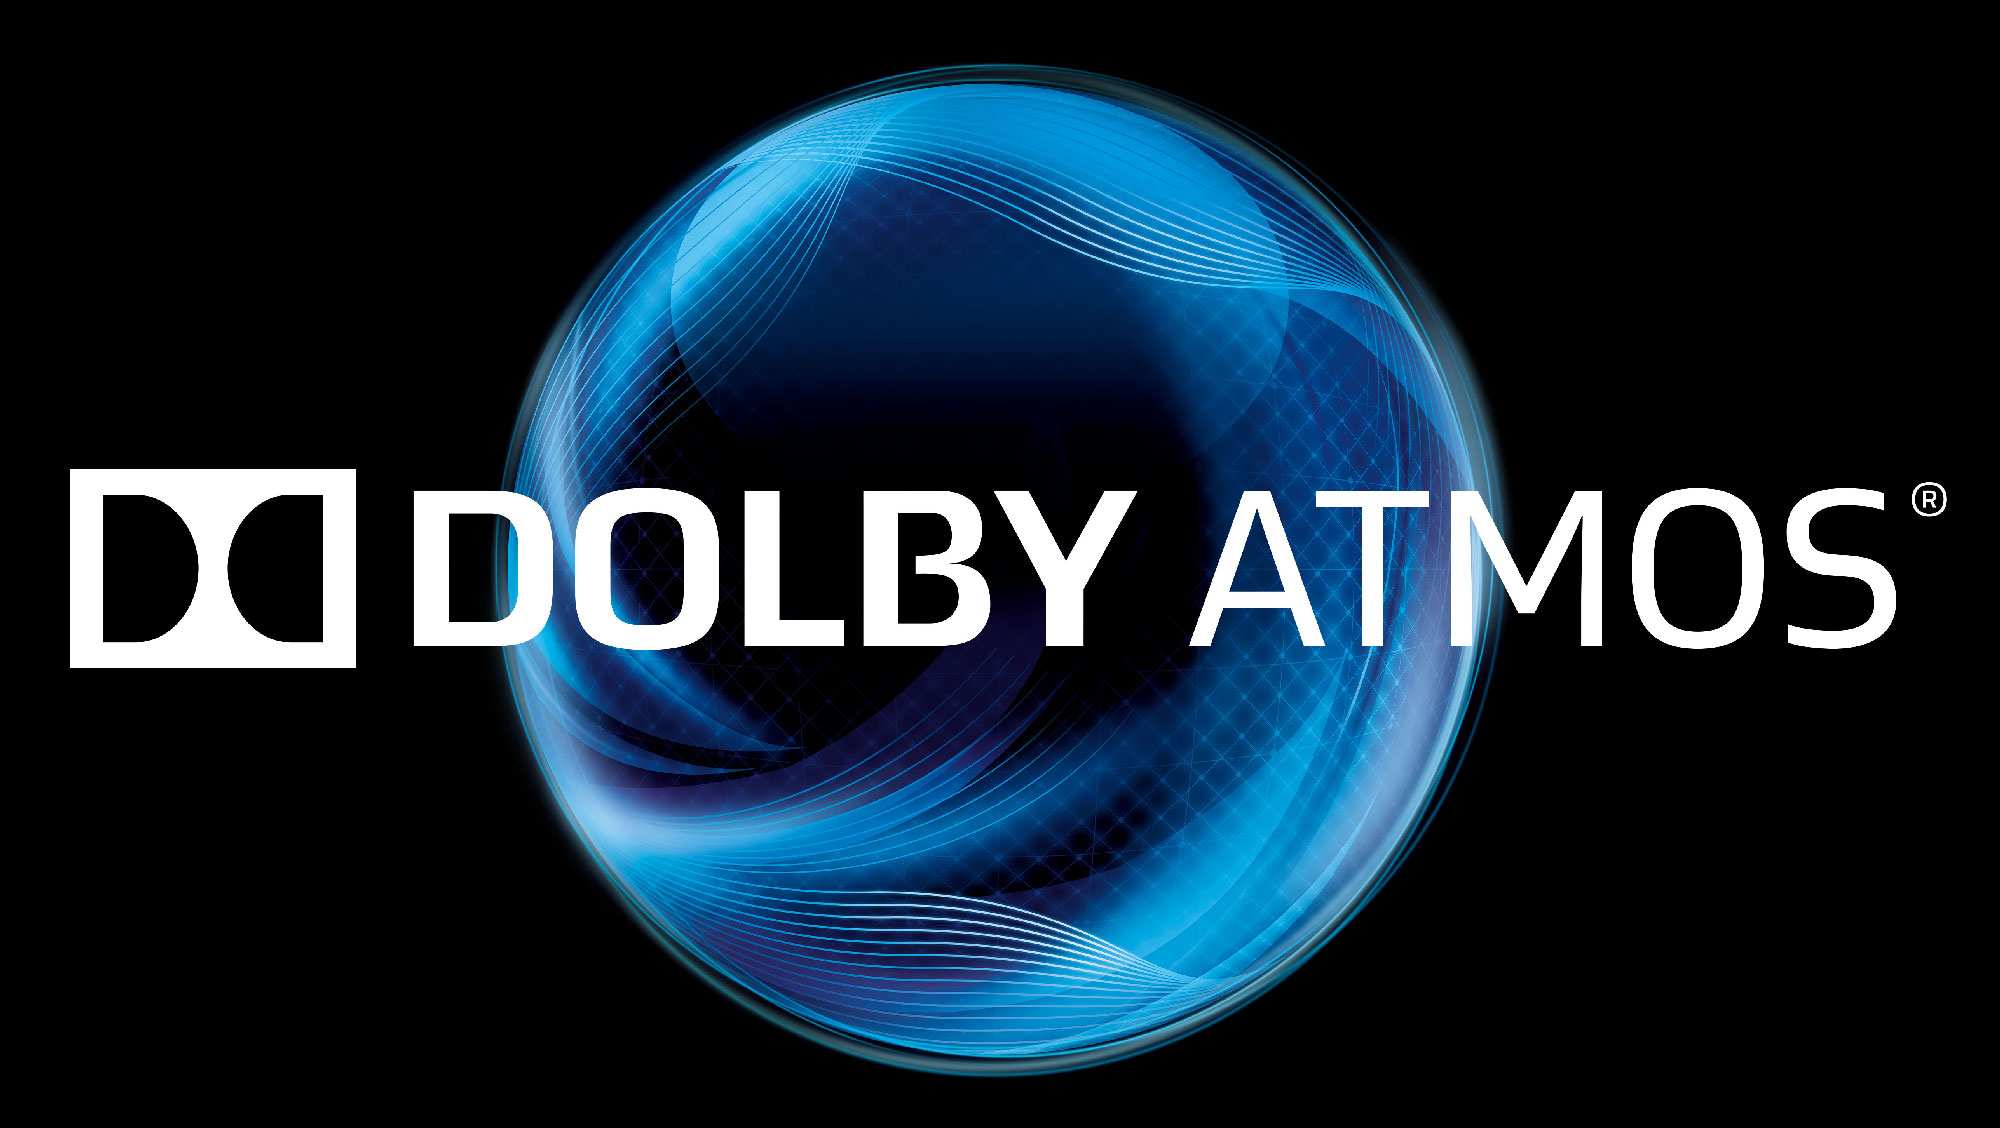 In Ceiling Speaker Placement How To Setup Fluance With Dolby Atmos Wires And Functional Addition Can Possible That The Kind Home